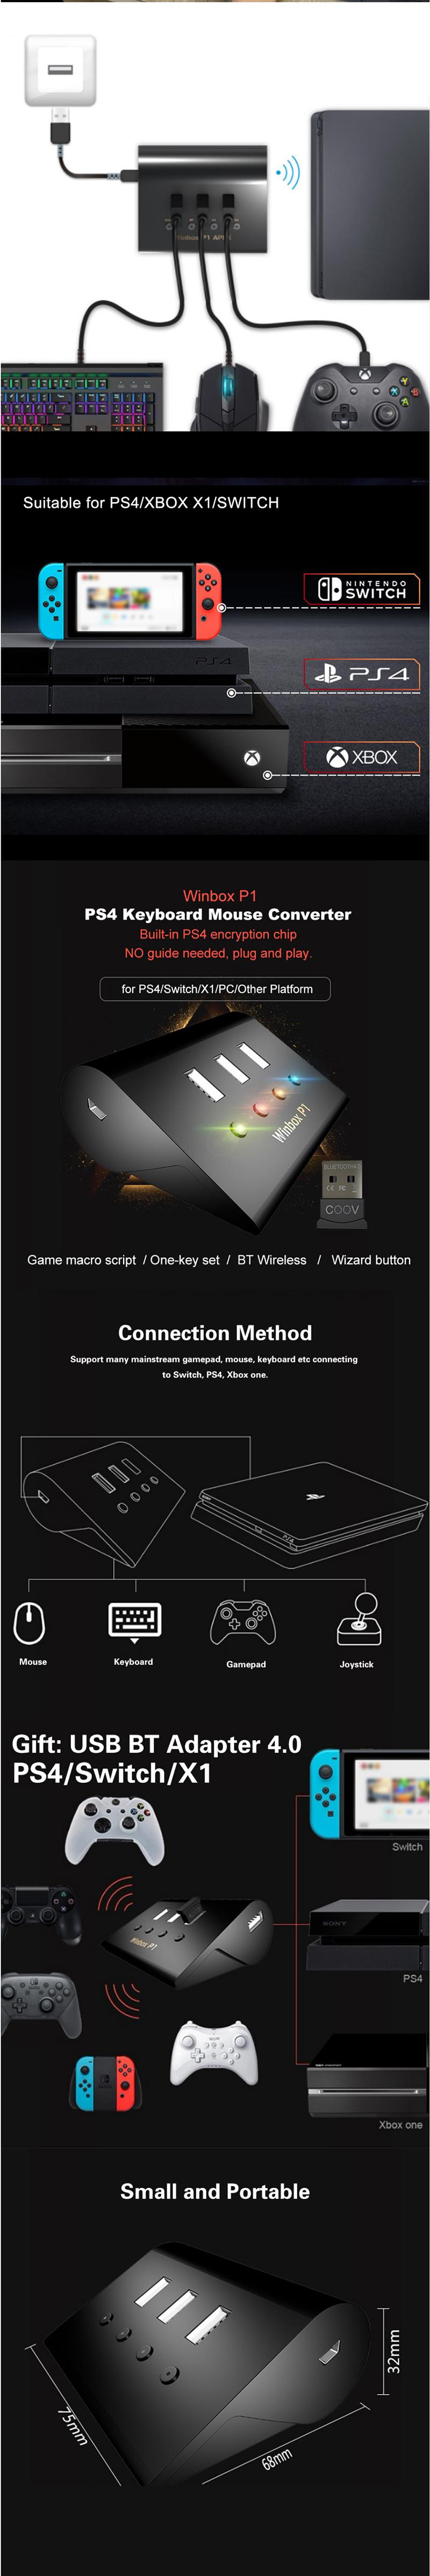 Winbox P1 Pro Keyboard Mouse Converter Adapter Game Console for